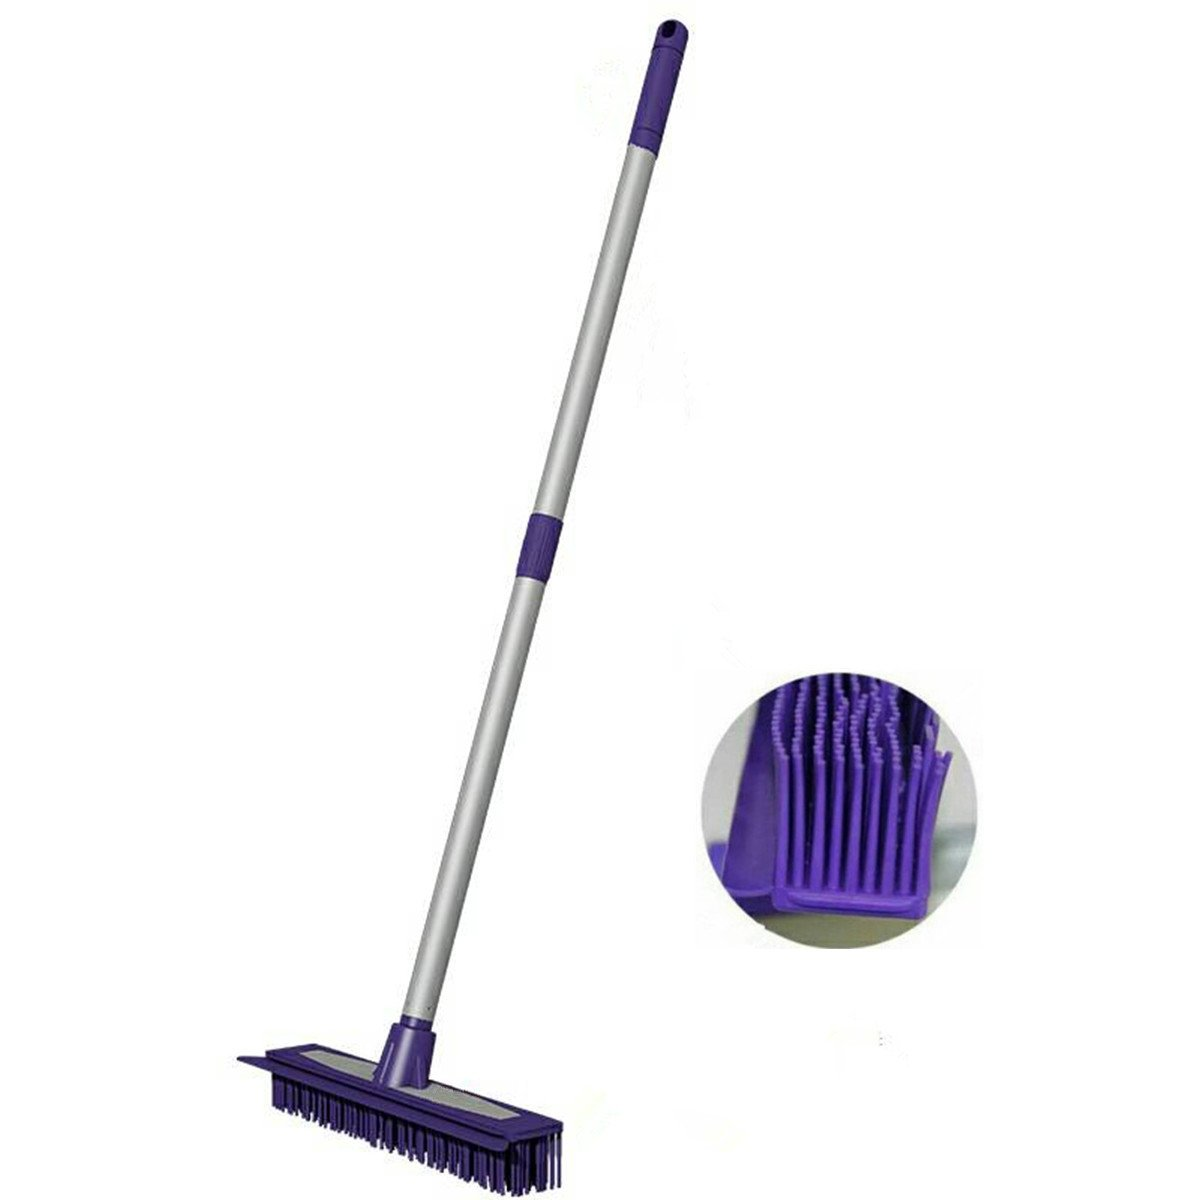 Rubber Push Broom-Extra Extendable Telescopic Long Handle Bristles Squeegee Broom Bristle Sweeper Removal Pet & Human Hair for Cleaning Hardwood Carpet Tile Windows Clean Water Resistant(Grey)